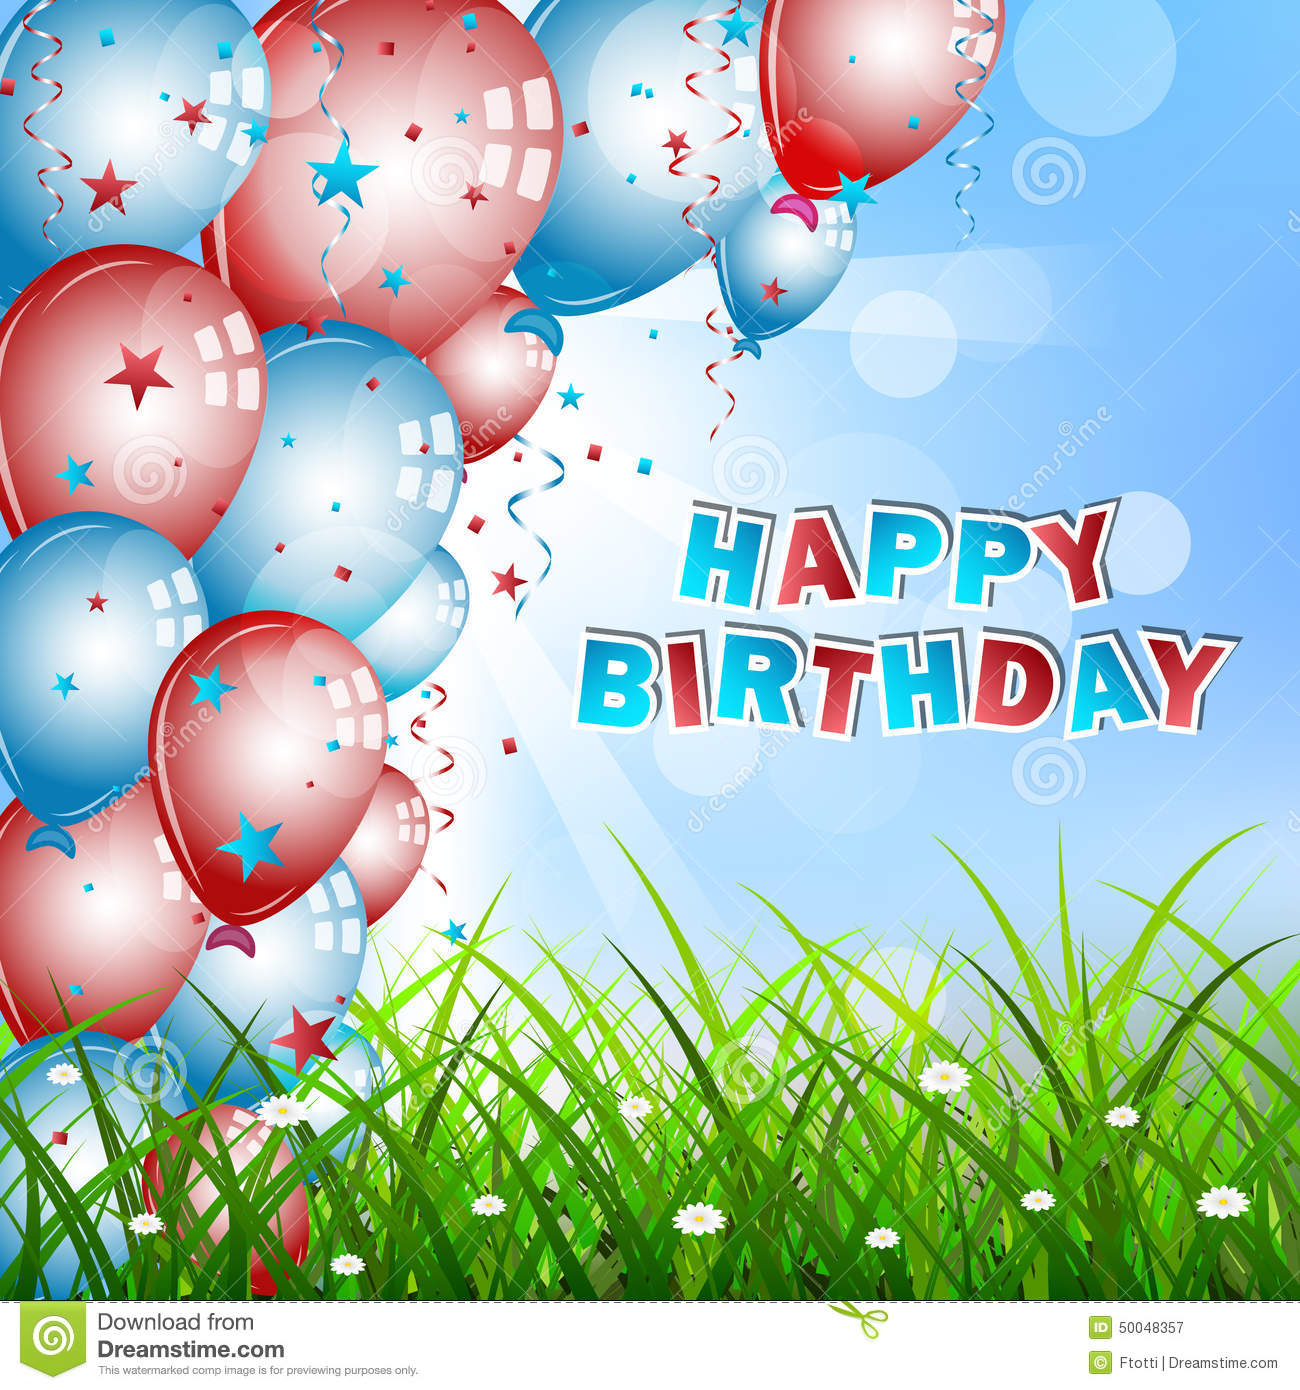 Birthday Wishes With Balloons Confetti Green Grass And Sky Illustration